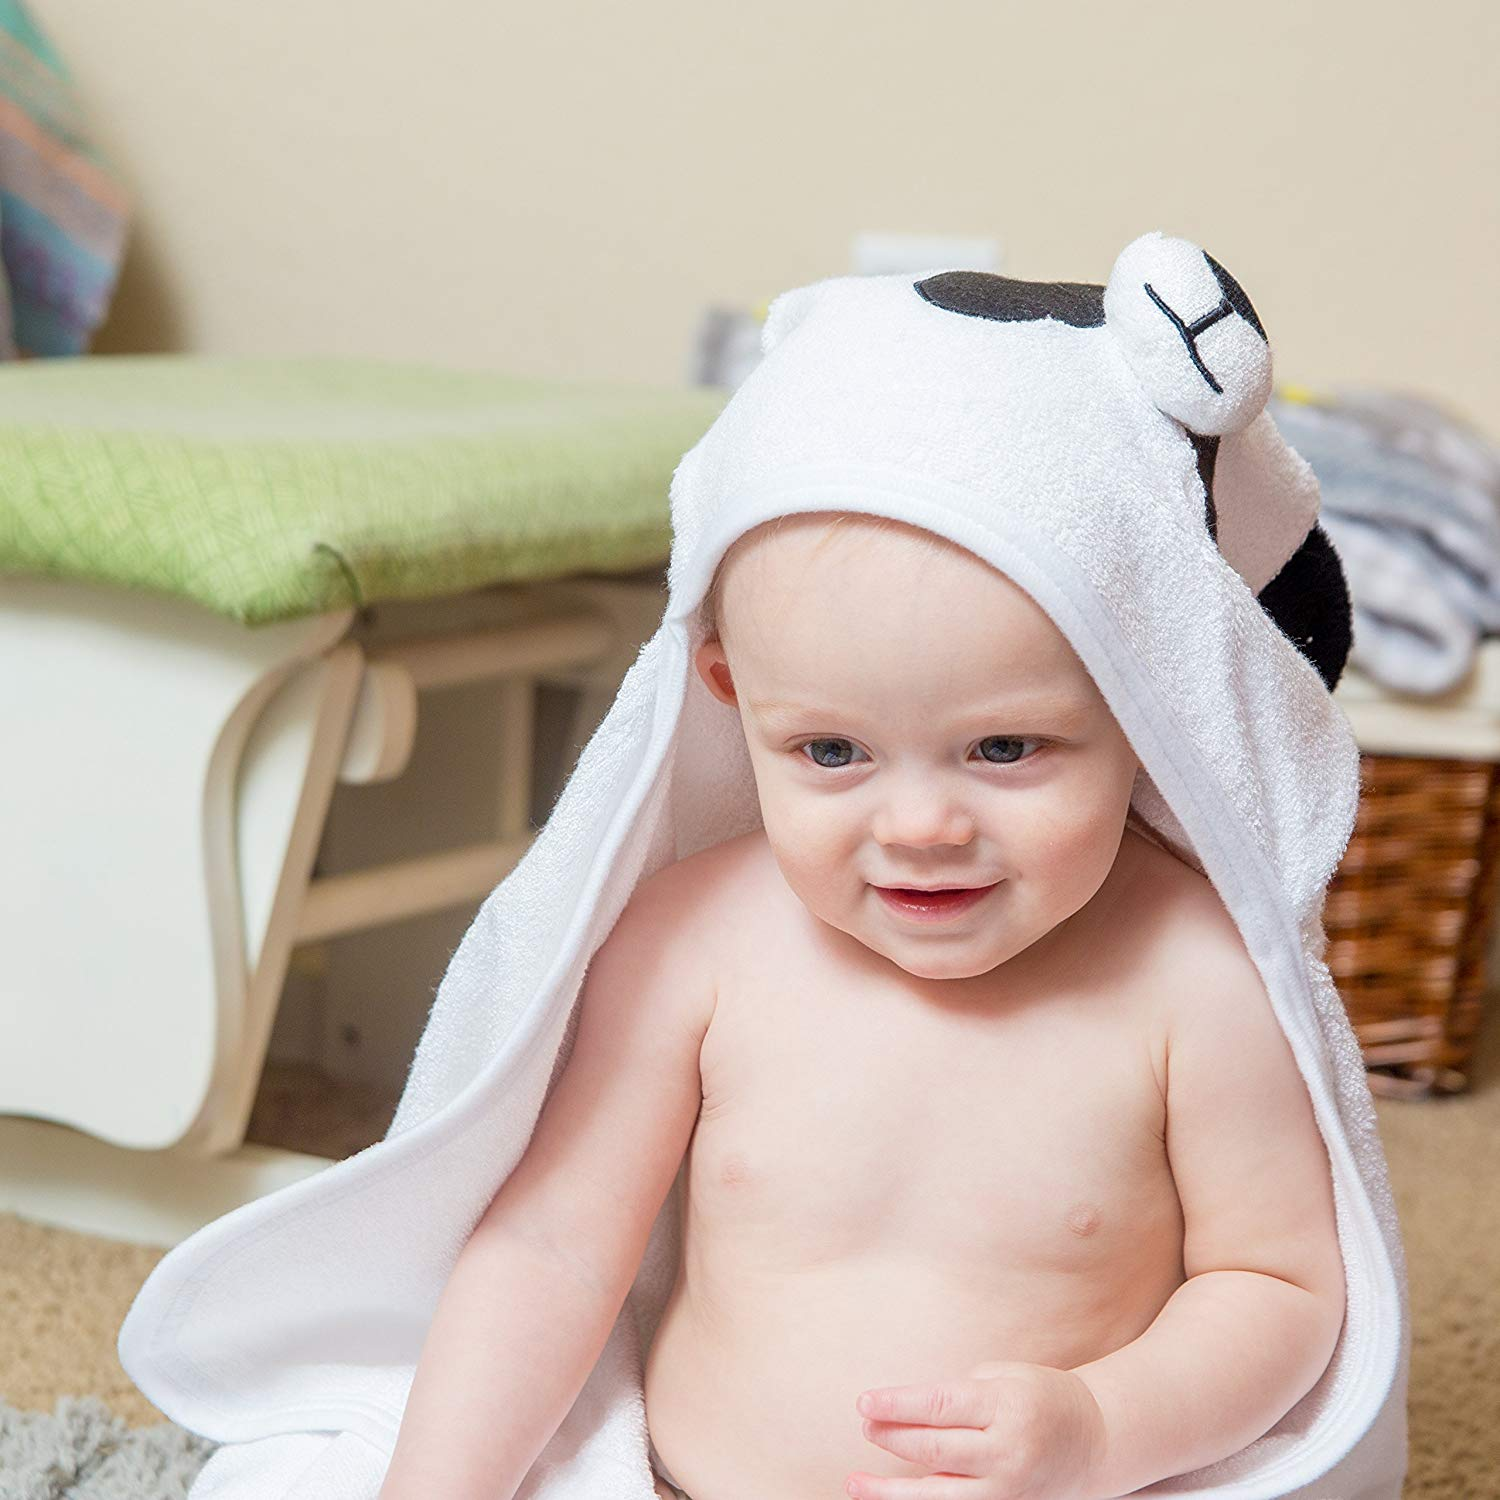 Bamboo Panda Hooded Baby Towel 100 Organic Unisex Towel Highly Absorbent And Super Soft Bath Towel For The Pool An B071G2C4Z9 5